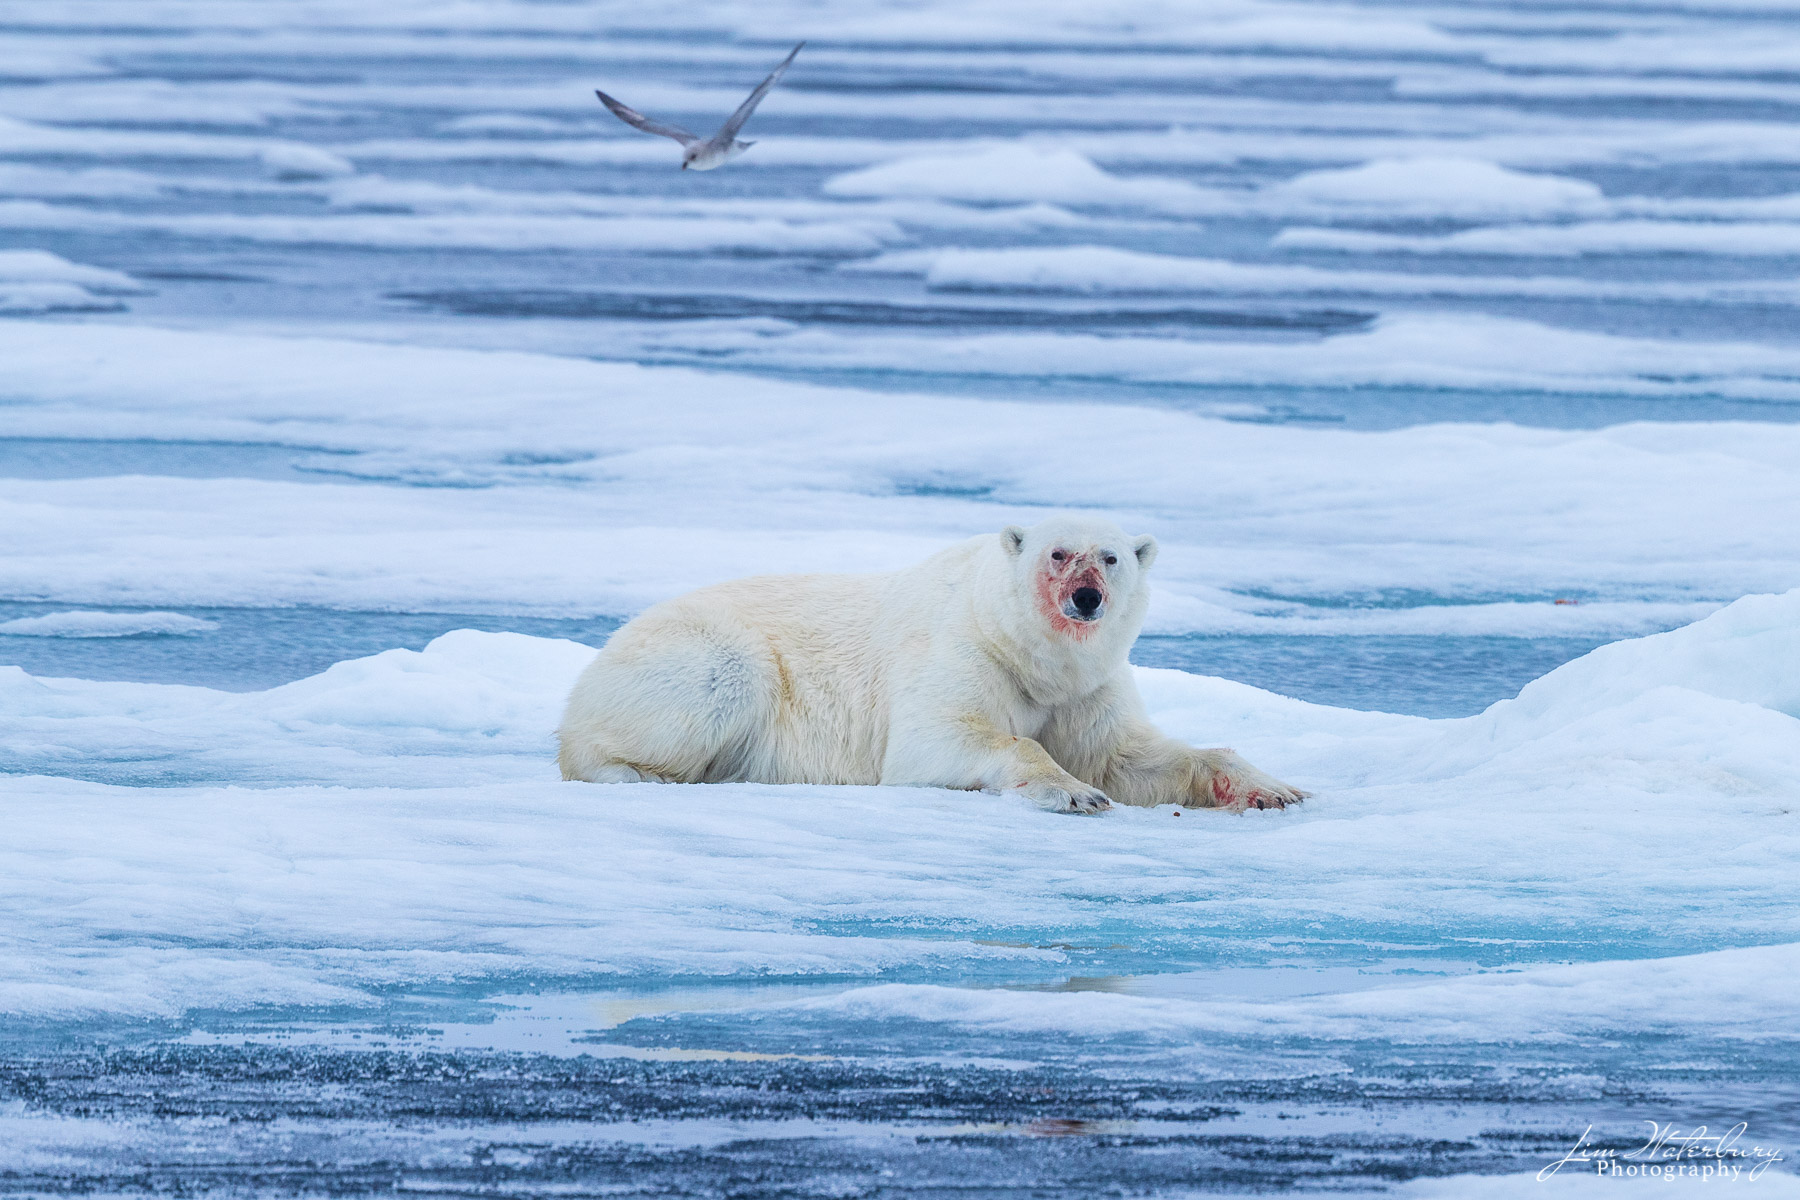 Arctic, Europe, Norway, Svalbard, ice, polar bear, photo